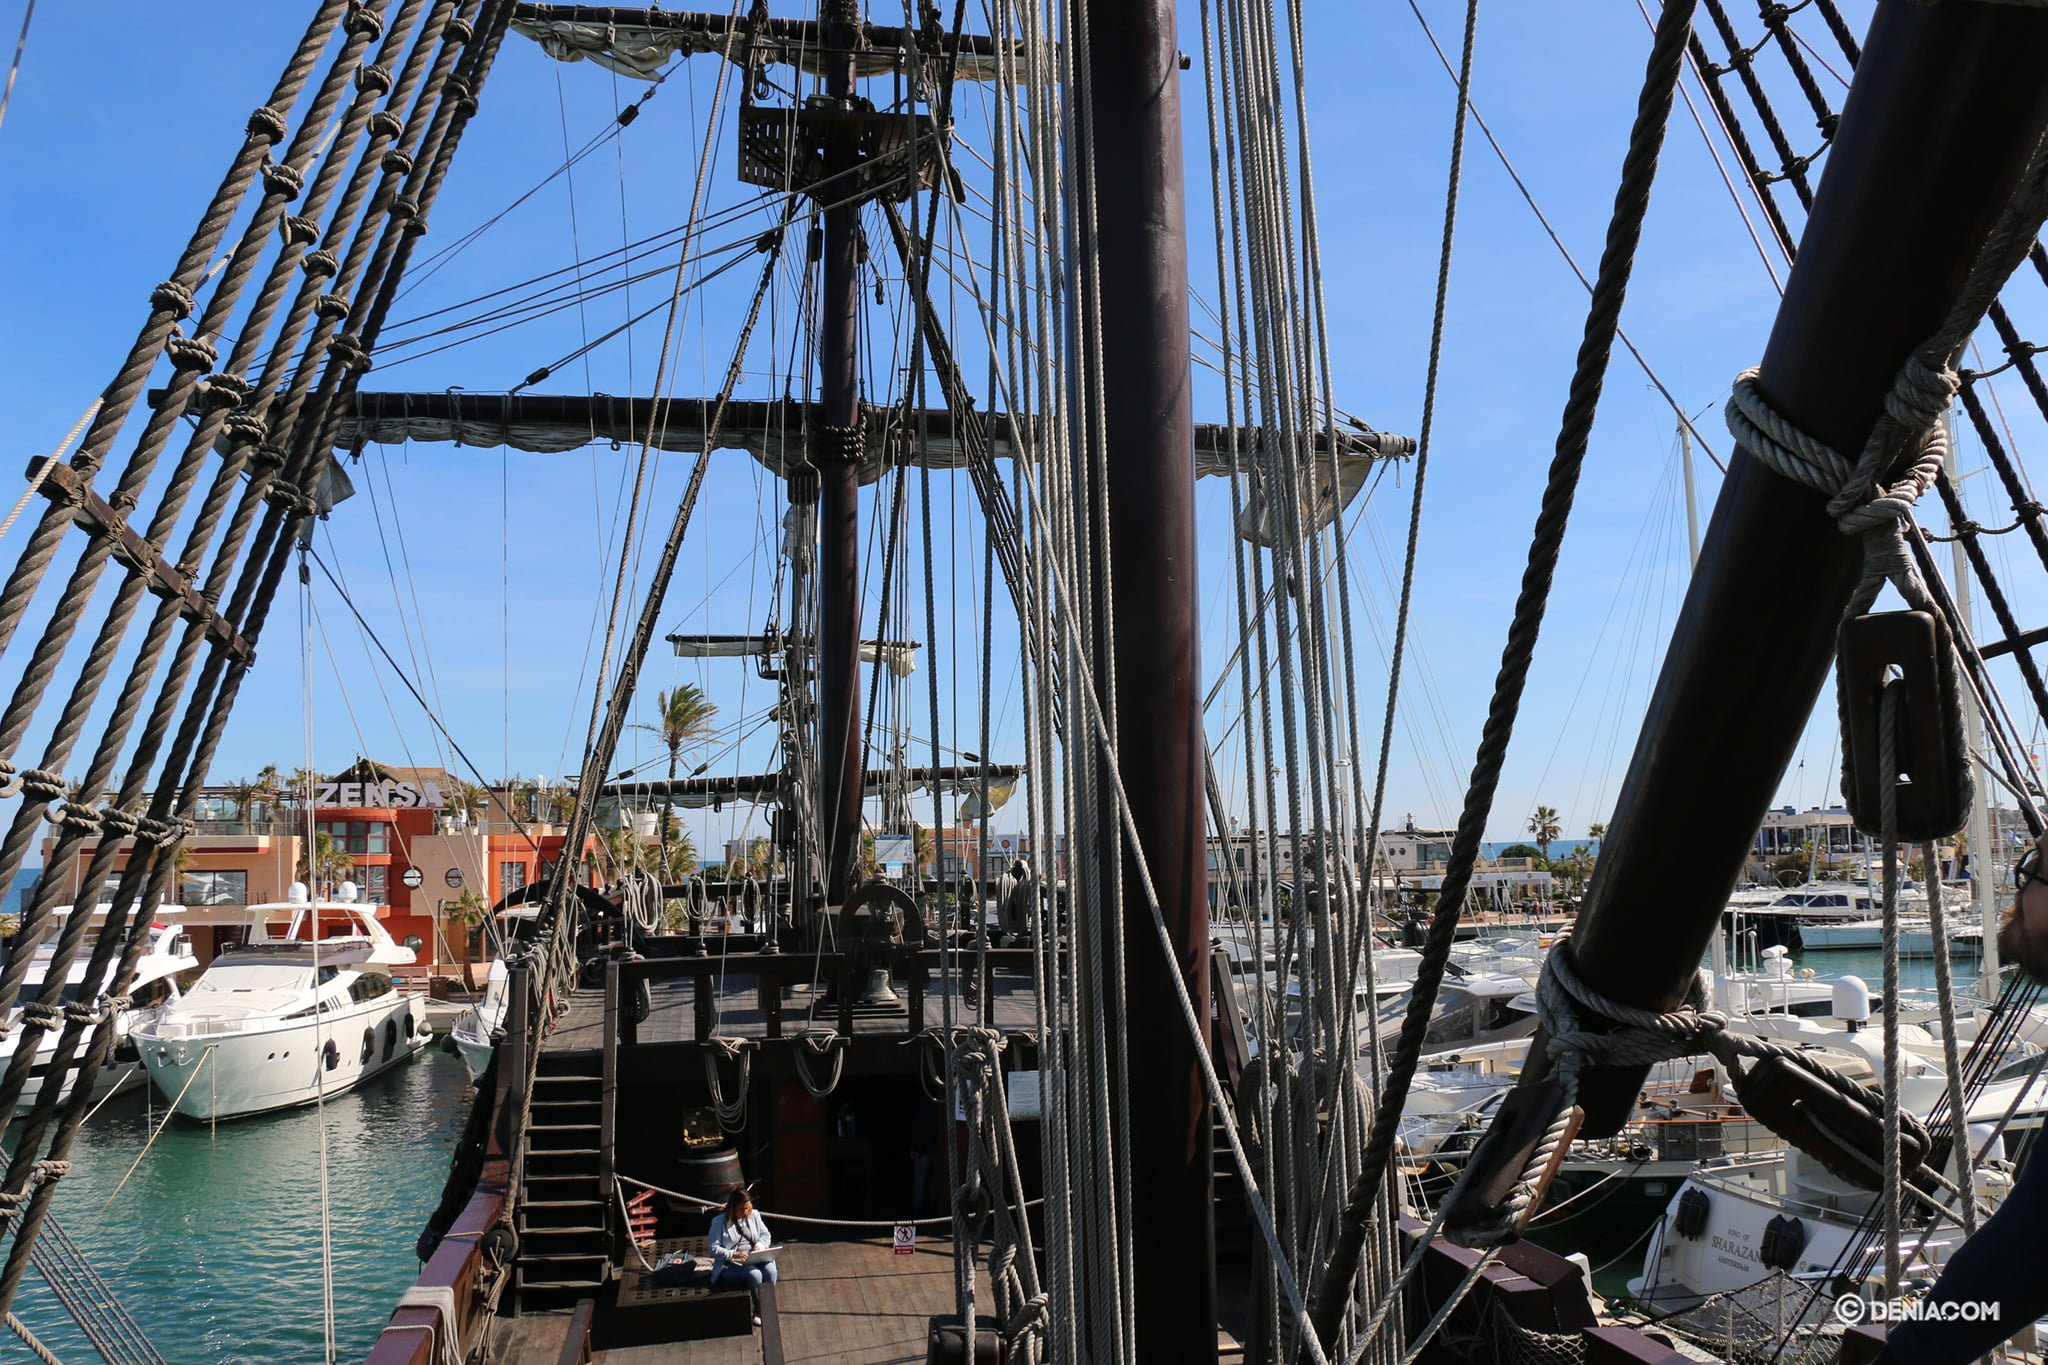 Inside the Galleon Andalusia